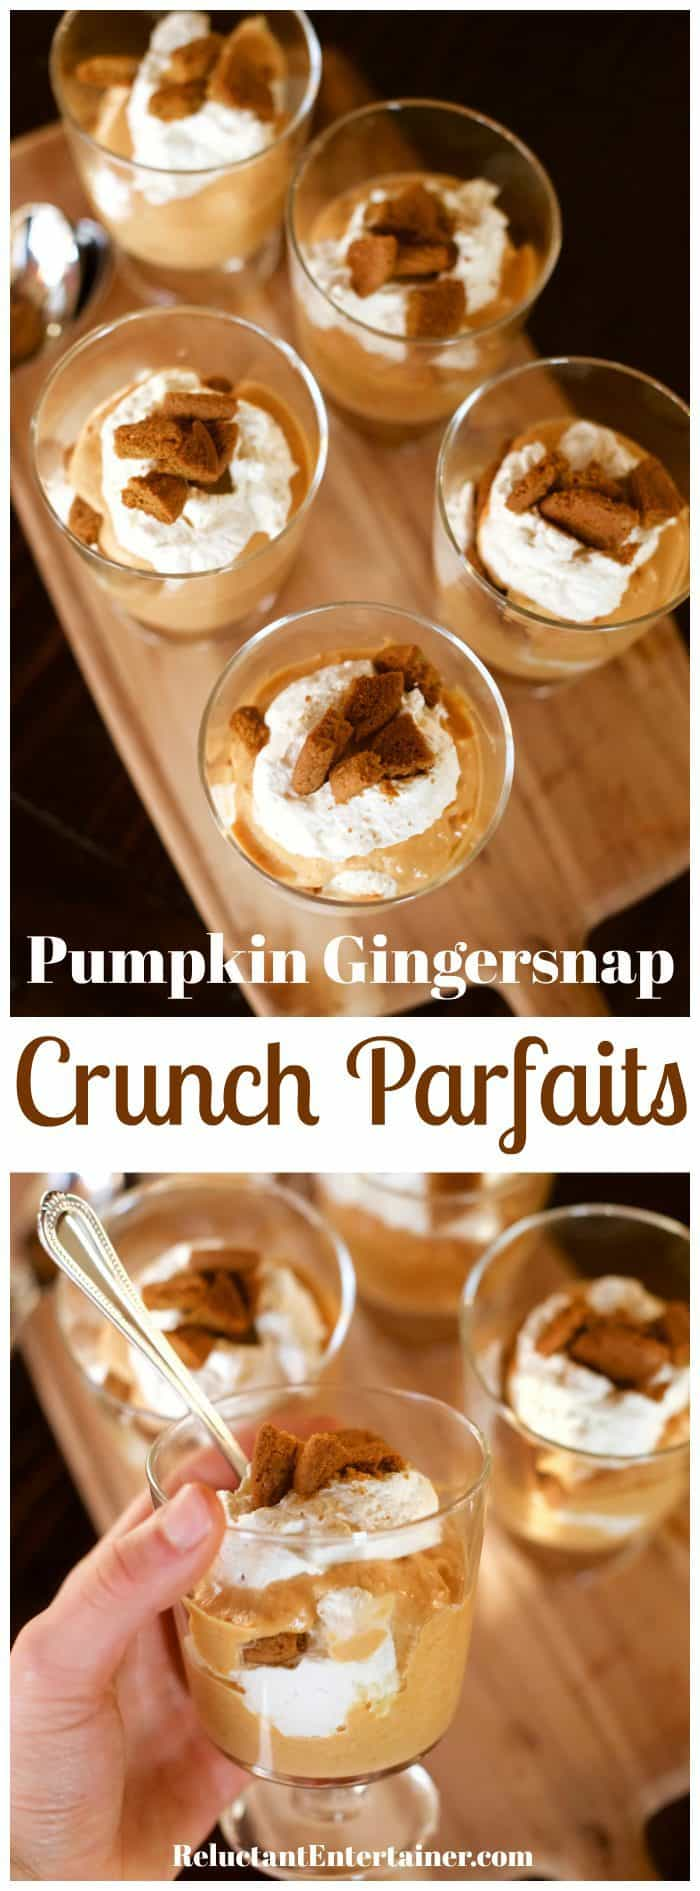 Pumpkin Gingersnap Crunch Parfaits Recipe